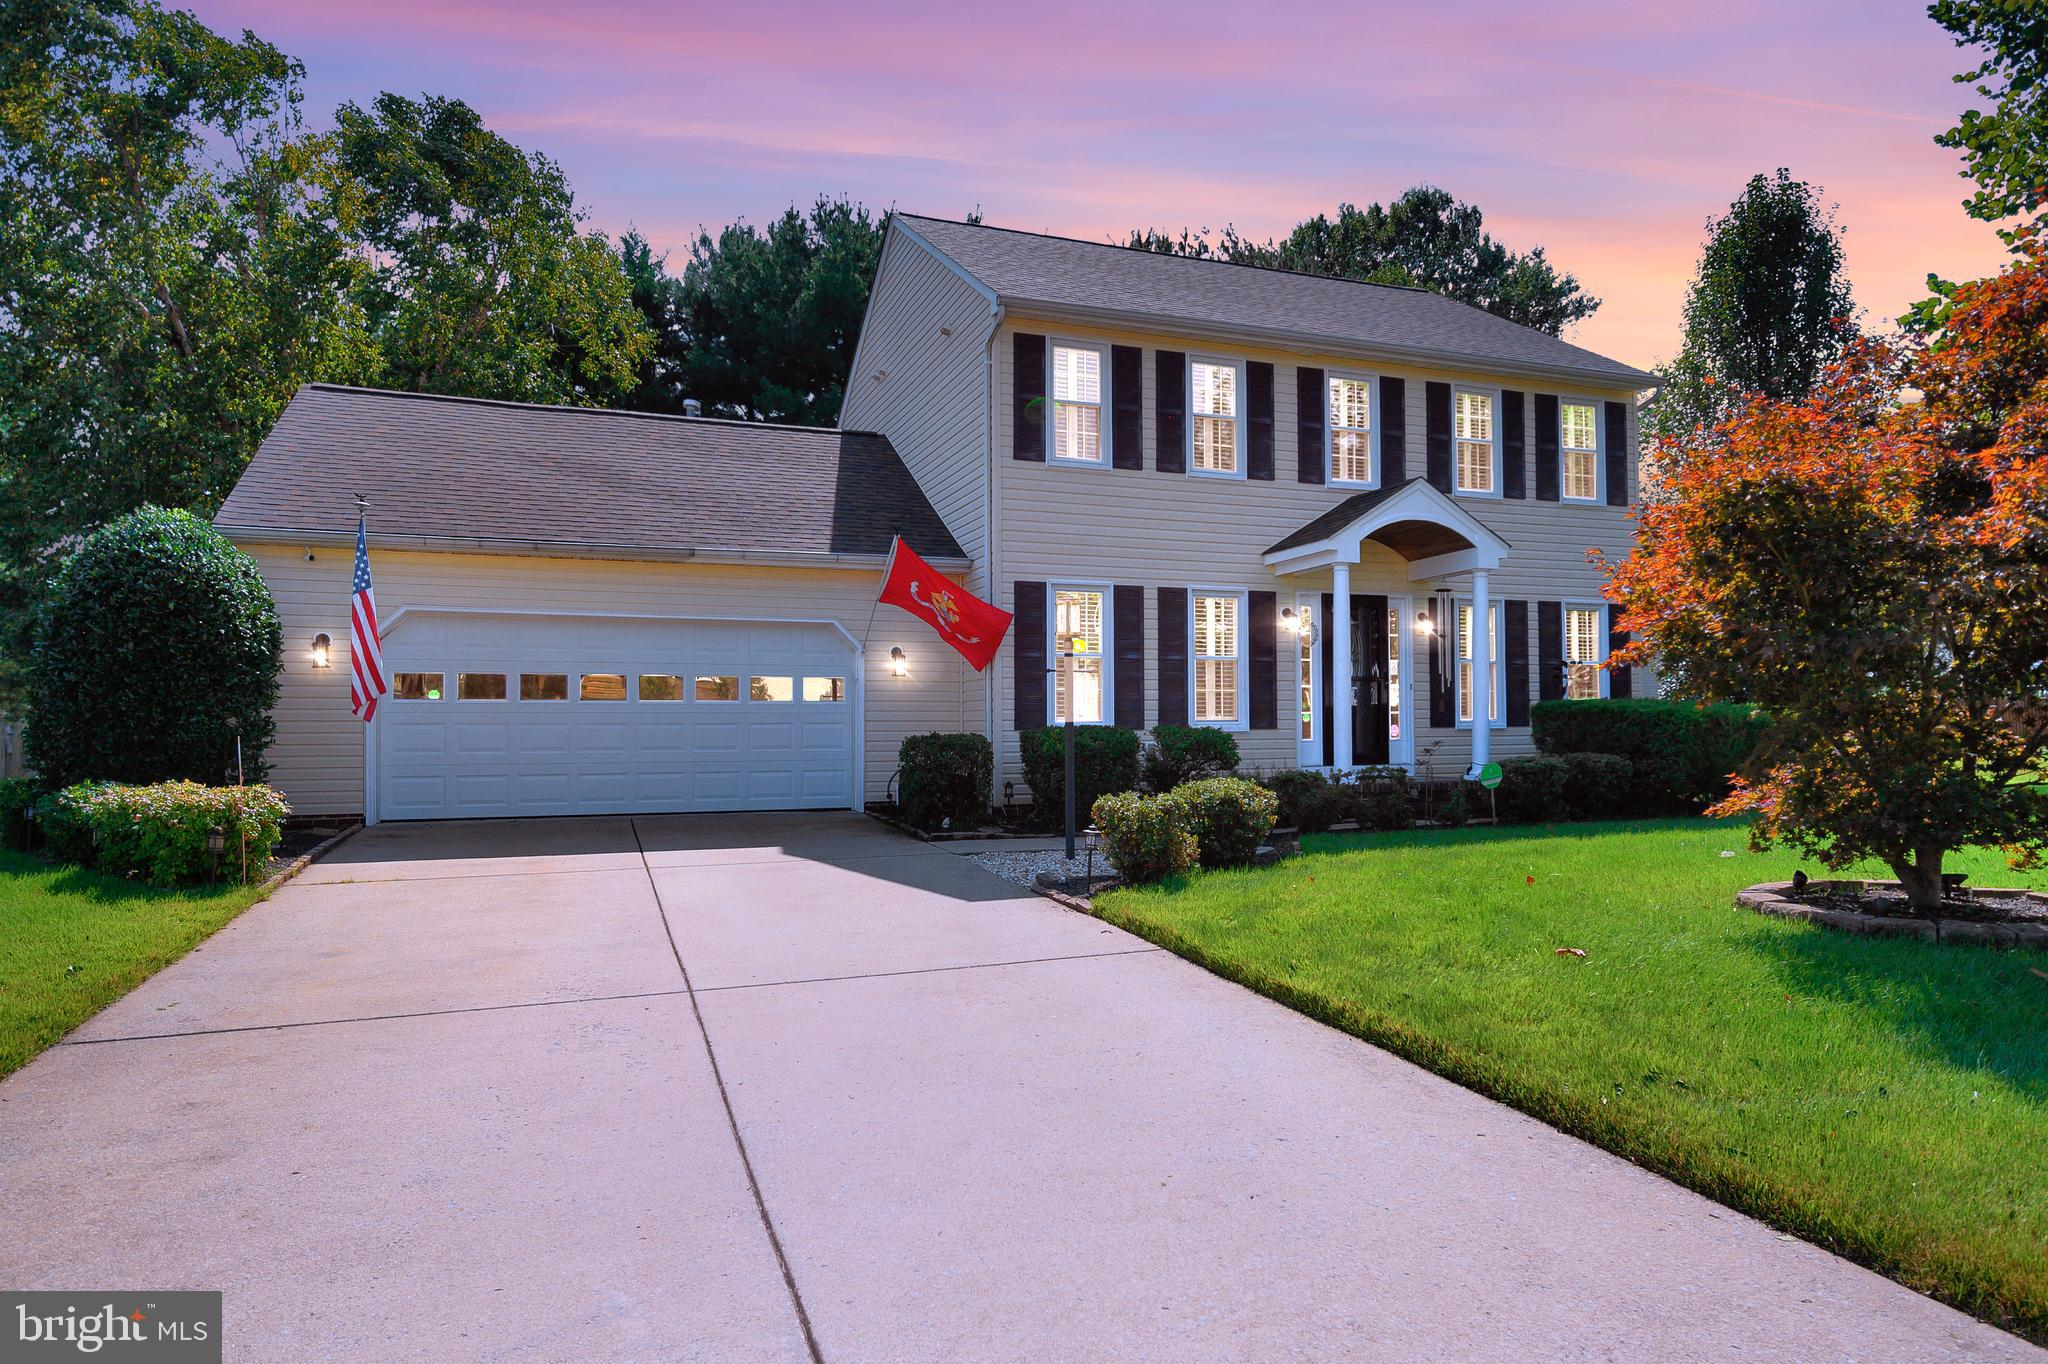 WOW! Put this beauty on your MUST SEE list!!!  This home was built in 2002, it is believed to have over 1700 sq ft with 3 bedrooms and 2.5 baths, 2 car garage, screened in back porch, fresh sidewalks, and an adorable shed, great for storage! This lovely Colonial Home in River Meadows Subdivision?, c?onveniently located off of Rt. 2, near Shannon Airport? & j?ust minutes to Downtown Fredericksburg, hotels, shopping & medical, schools, and all major thoroughfares.  When you pull up the first thing you'll notice is the welcoming curb appeal and lush landscaping! Just wait until you get inside!  ?You'll immediately know this is a very well loved and maintained home. From the pleasant dining room, stunning kitchen and covered patio, entertaining will be a breeze! On cold winter nights, you'll enjoy snuggling by the fire in the family room while watching your favorite movies, sports or flicks! And the living/flex room has unlimited possibilities! Upstairs the primary bedroom is spacious, yet comfy and offers an updated primary bathroom complete with dual sinks, soaker tub and walk-in shower. And don't forget to check out the closet system. Two additional bedrooms, bathroom and upper level laundry area complete the upper level. Now, let's head to the garage where you'll find great storage, workshop space, and a delightful Lifestyle Screen System, which turns your garage into an airy, pest free space! Exterior home presents great landscaping, offering beauty and privacy.  Don't worry, of course there is an irrigation system, keeping your lawn, trees and shrubs show worthy!  The back yard is also fenced and no one can build behind you, offering even more privacy!  ?Most recent updates: Lifestyle Garage Screen System in 2020, Extra insulation added in 2020, Dishwasher & Microwave in 2020, 50 yr Roof in 2019, ,  Exterior lights in 2019, Back Patio/Sidewalk in 2018, Trane AC in 2017, Hot Water H?eater,  Gas Range, Kitchen Counters & Floors in 2015, Windows & Shutters in 2012.